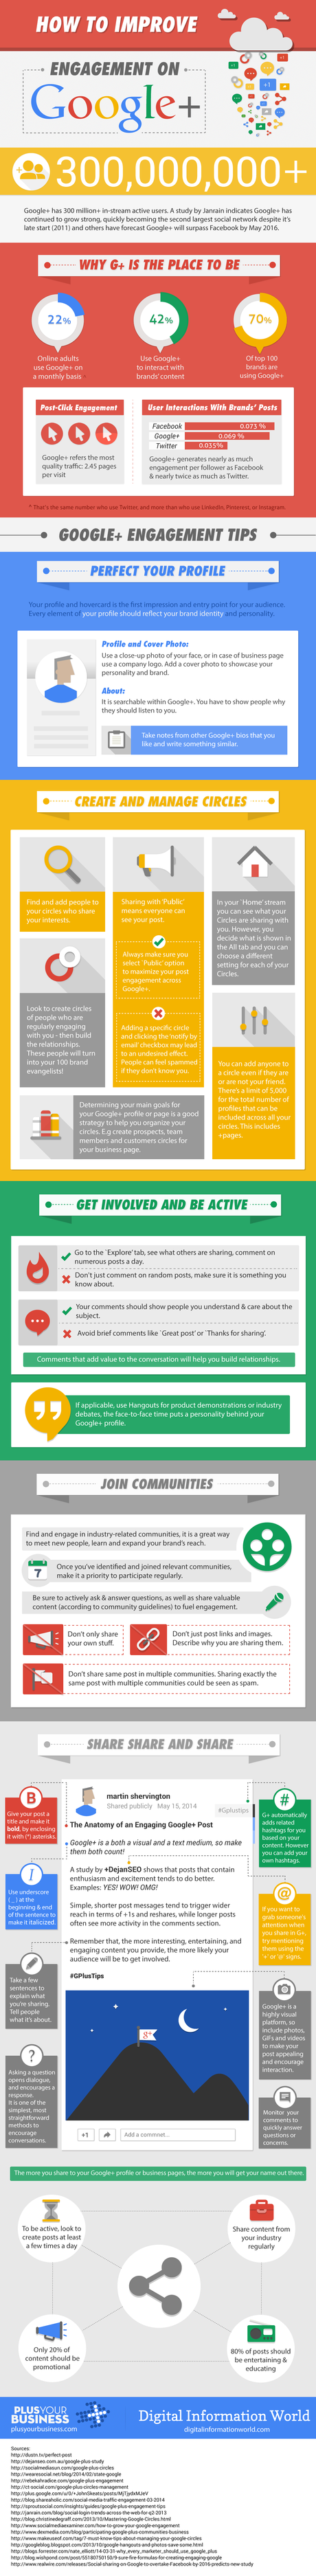 how to improve engagement on googleplus infographic 2014 june Google Plus For Marketing: How To Improve Your Engagement On Google Plus [INFOGRAPHIC]